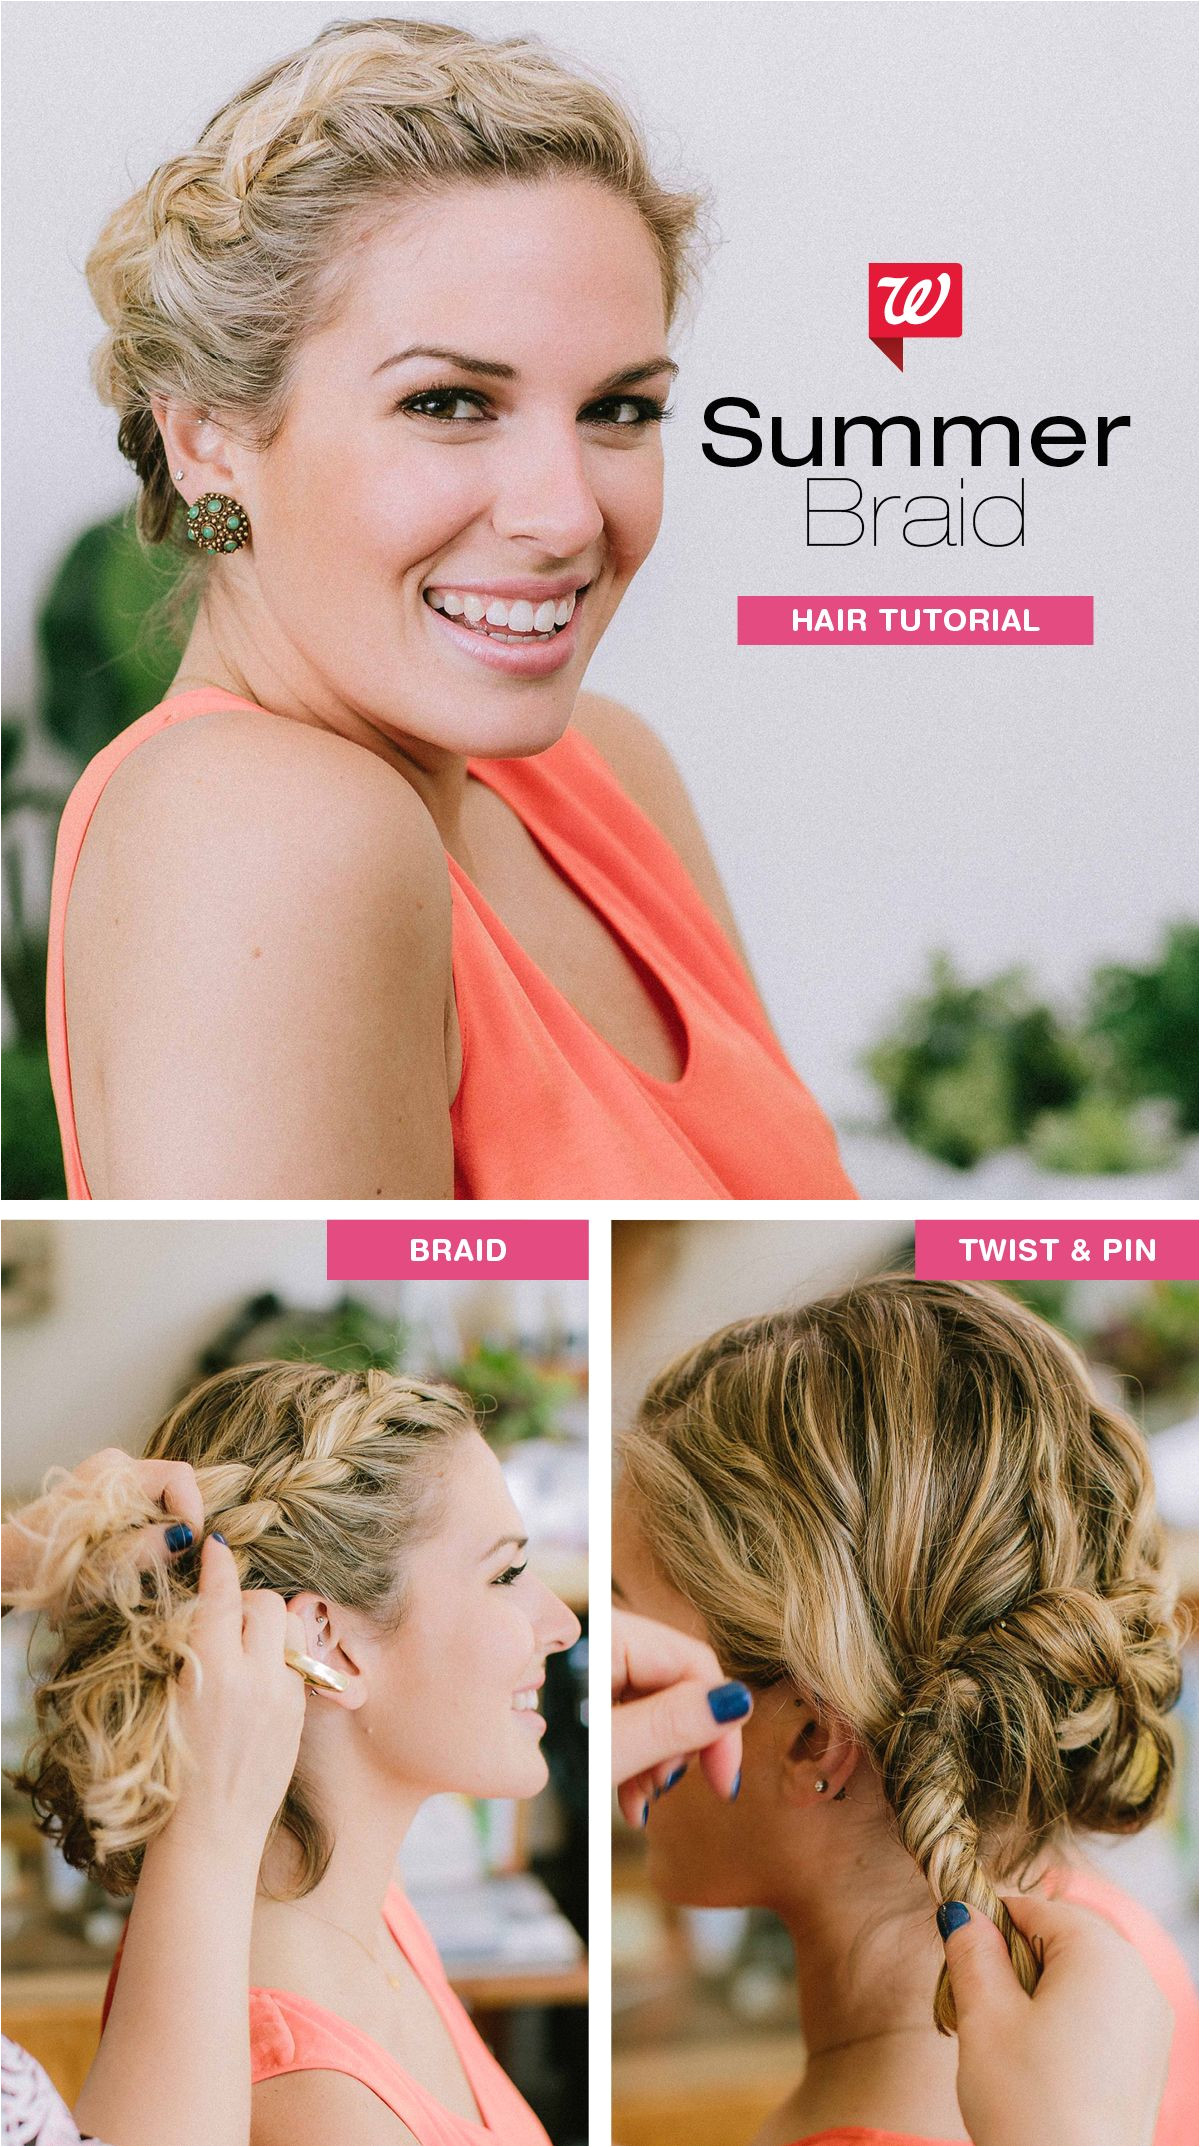 Style your hair in a no fuss easy summer do—perfect for short tresses First braid your hair tightly at the crown continuing to the back as far as your